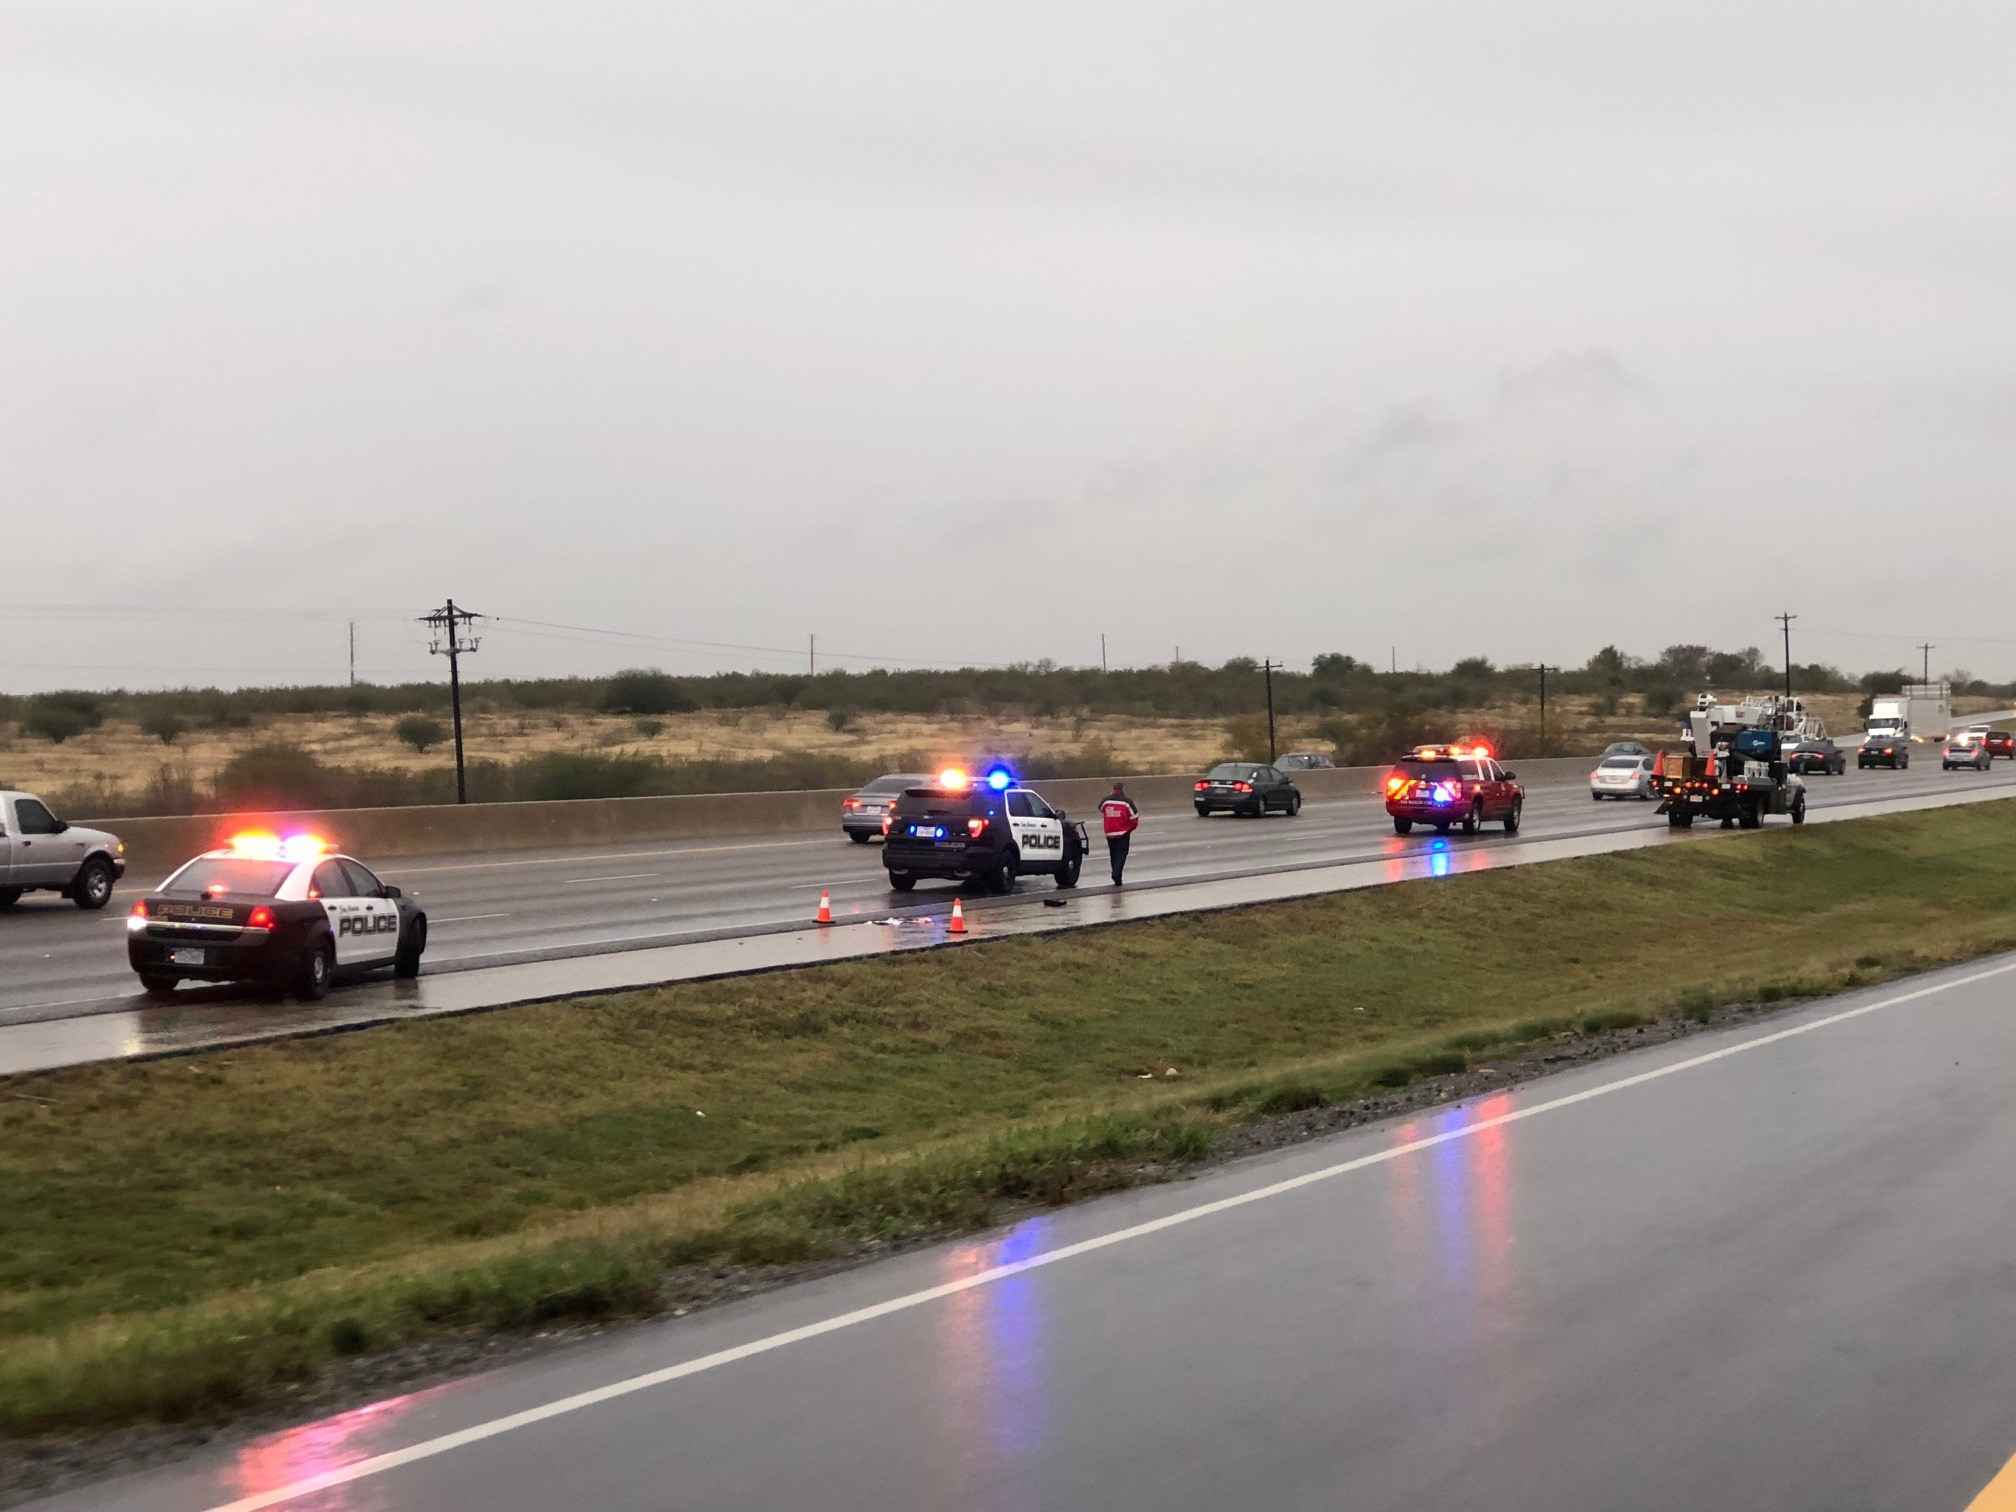 San Marcos Police say a man is critically injured after crashing a stolen car on I-35 and running into oncoming traffic on foot. (CBS Austin)